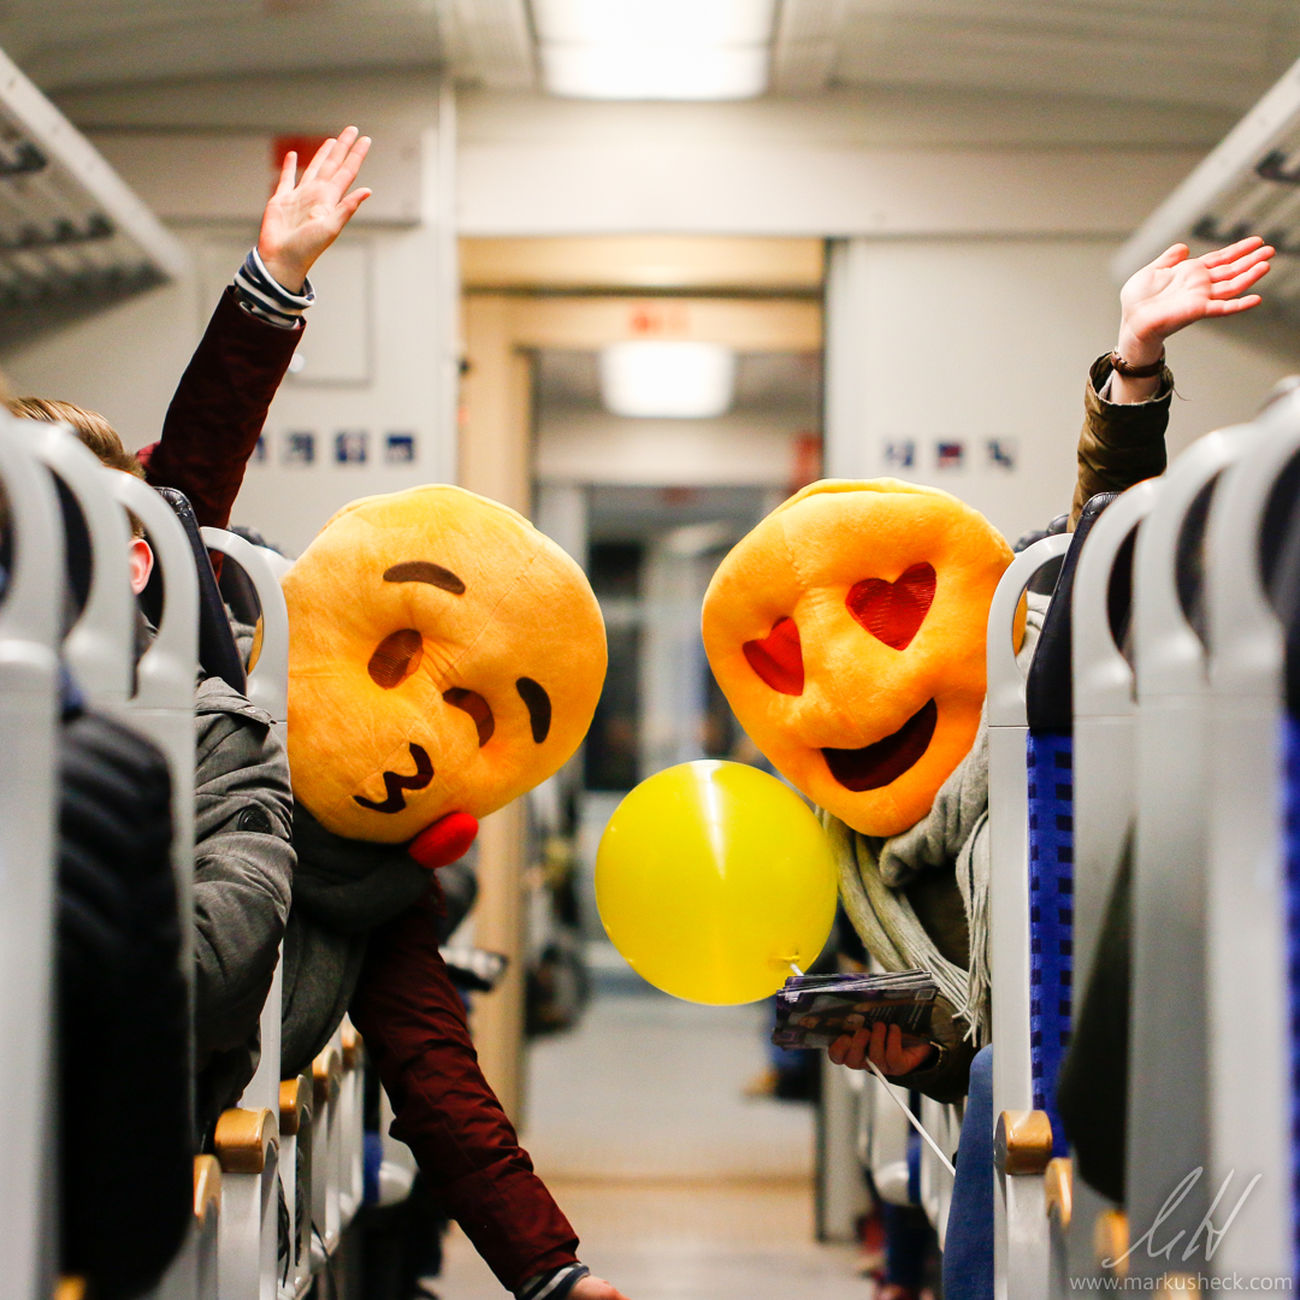 Emoji Funny Train Lifestyle Urban Colorful Laughing Out Loud WhatsApp Chat Halloween Human Body Part Celebration Pumpkin People Human Hand Indoors  One Person Adult Day